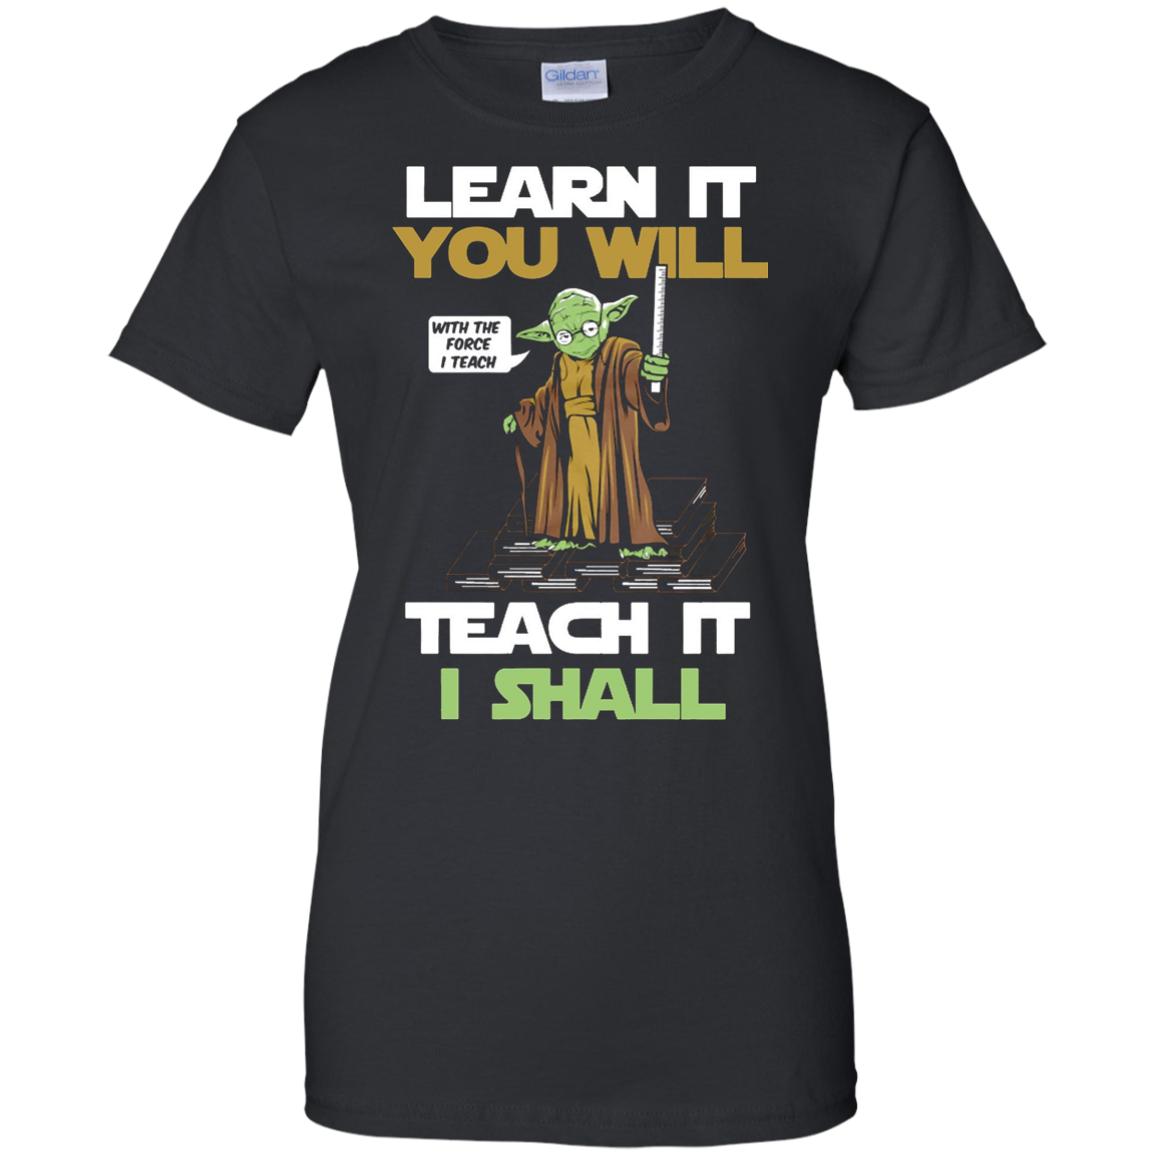 master teacher learn it you will teach it i shall t-shirt